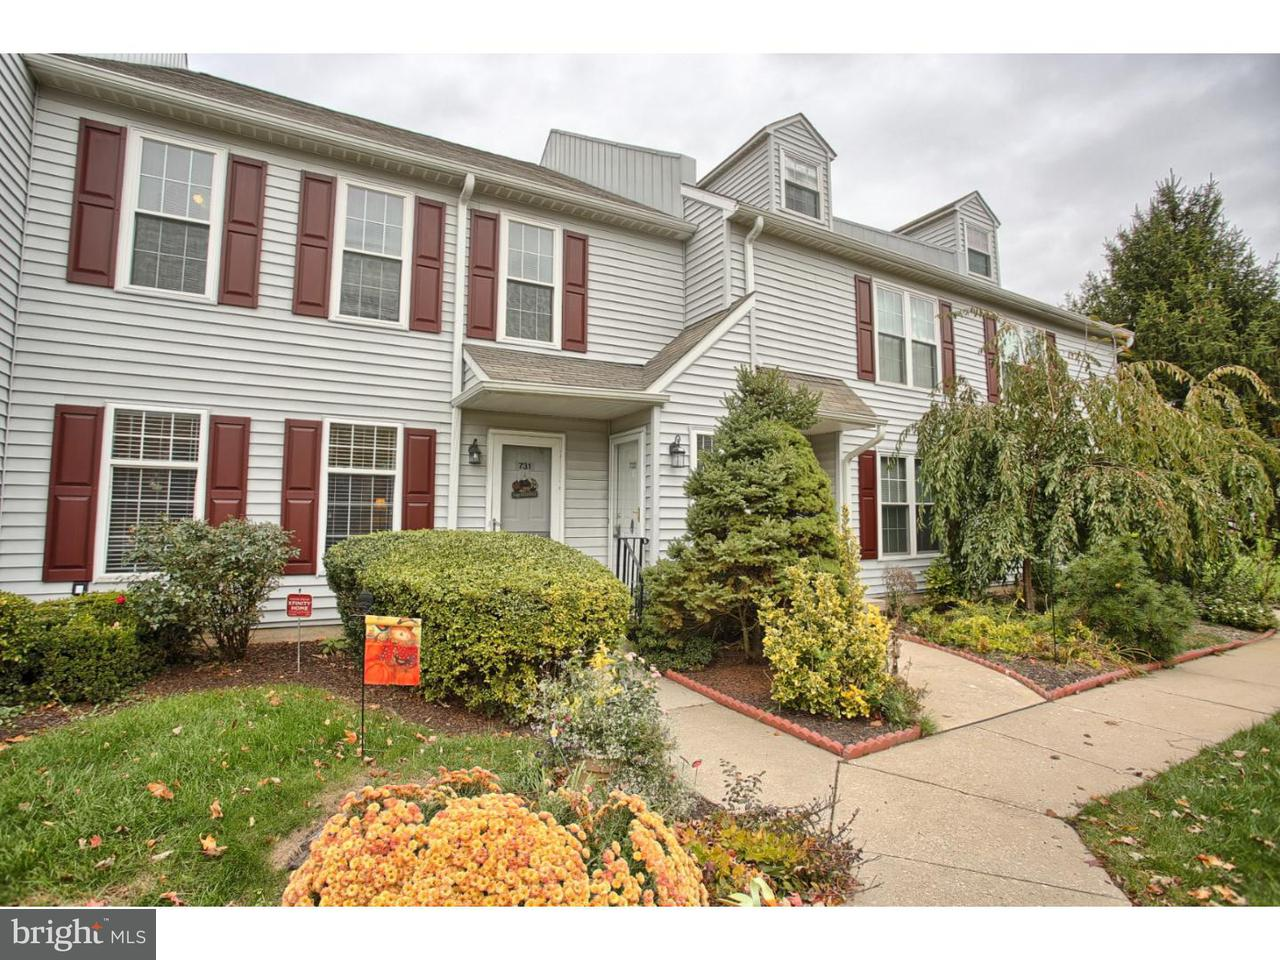 732  Chessie West Chester, PA 19380